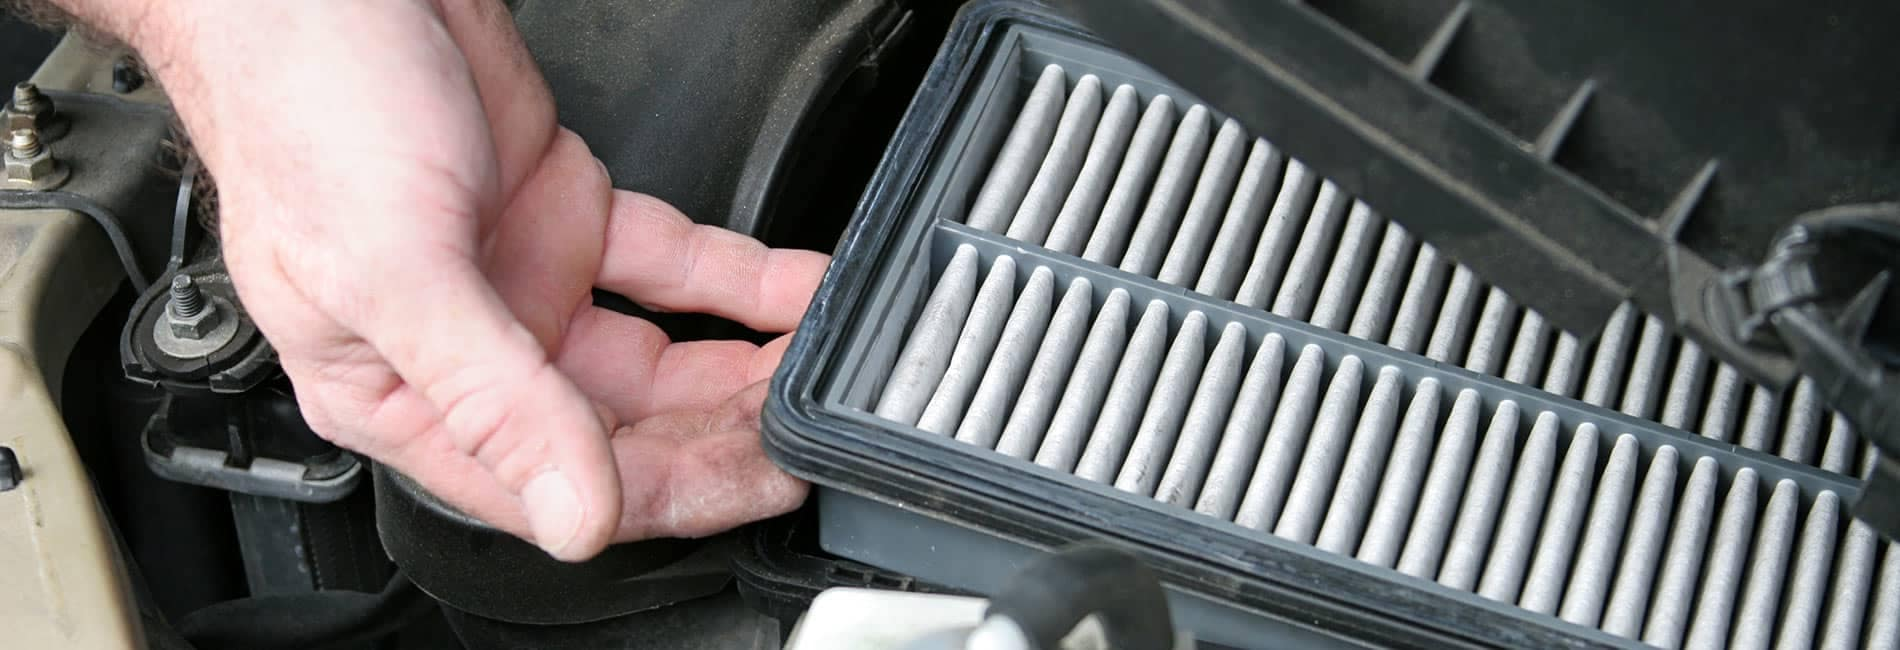 man's hand pulling out an air filter